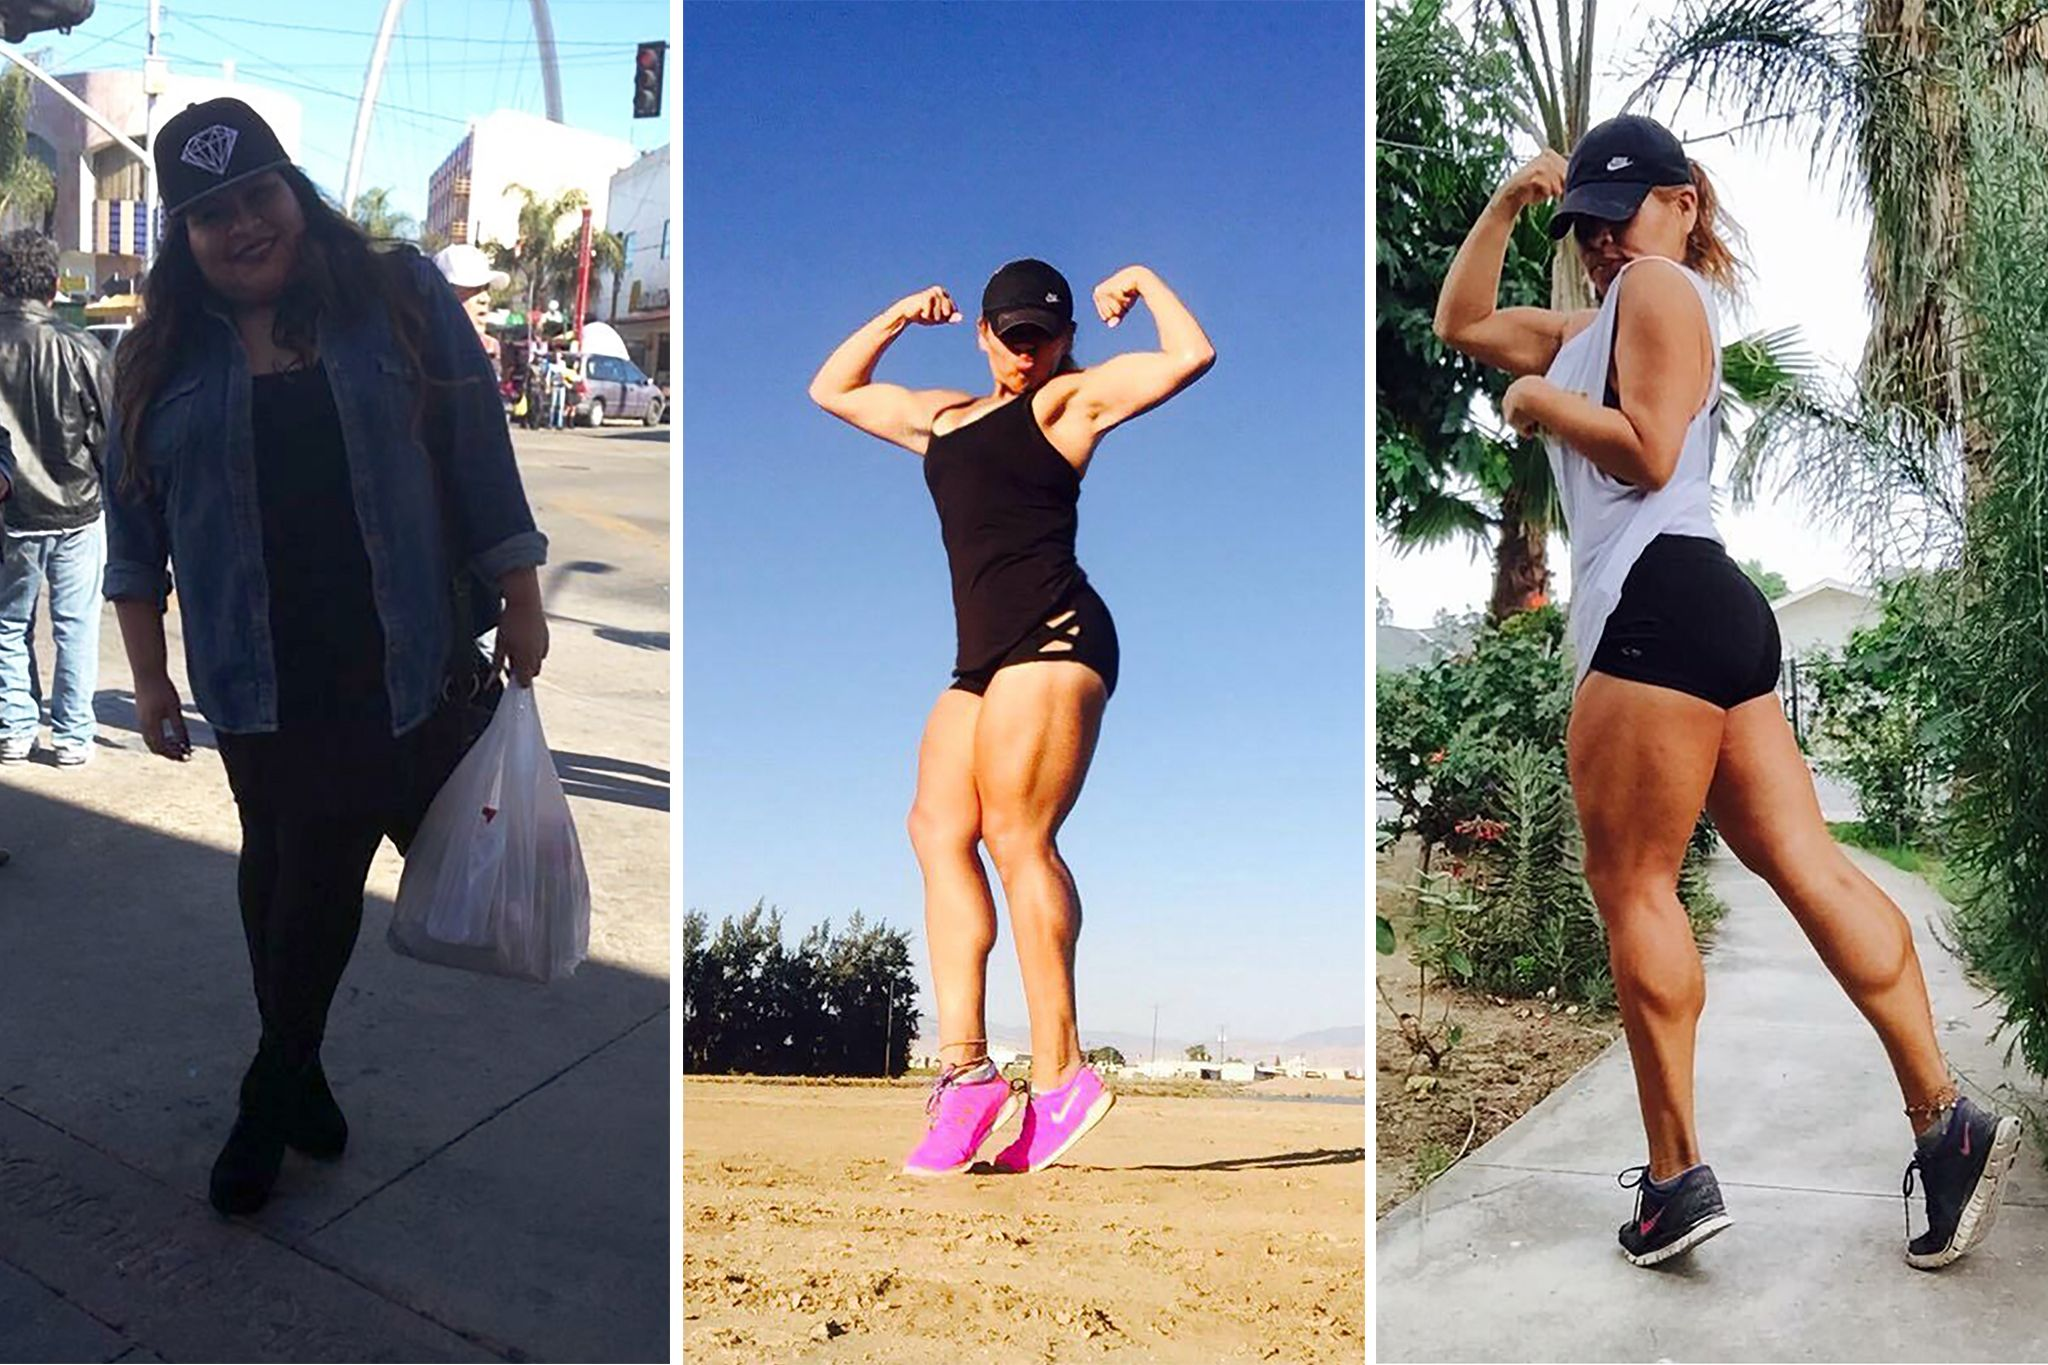 When Her Fiancé Cheated on Her, She Nearly Broke. Then She Ran Off 170 Pounds